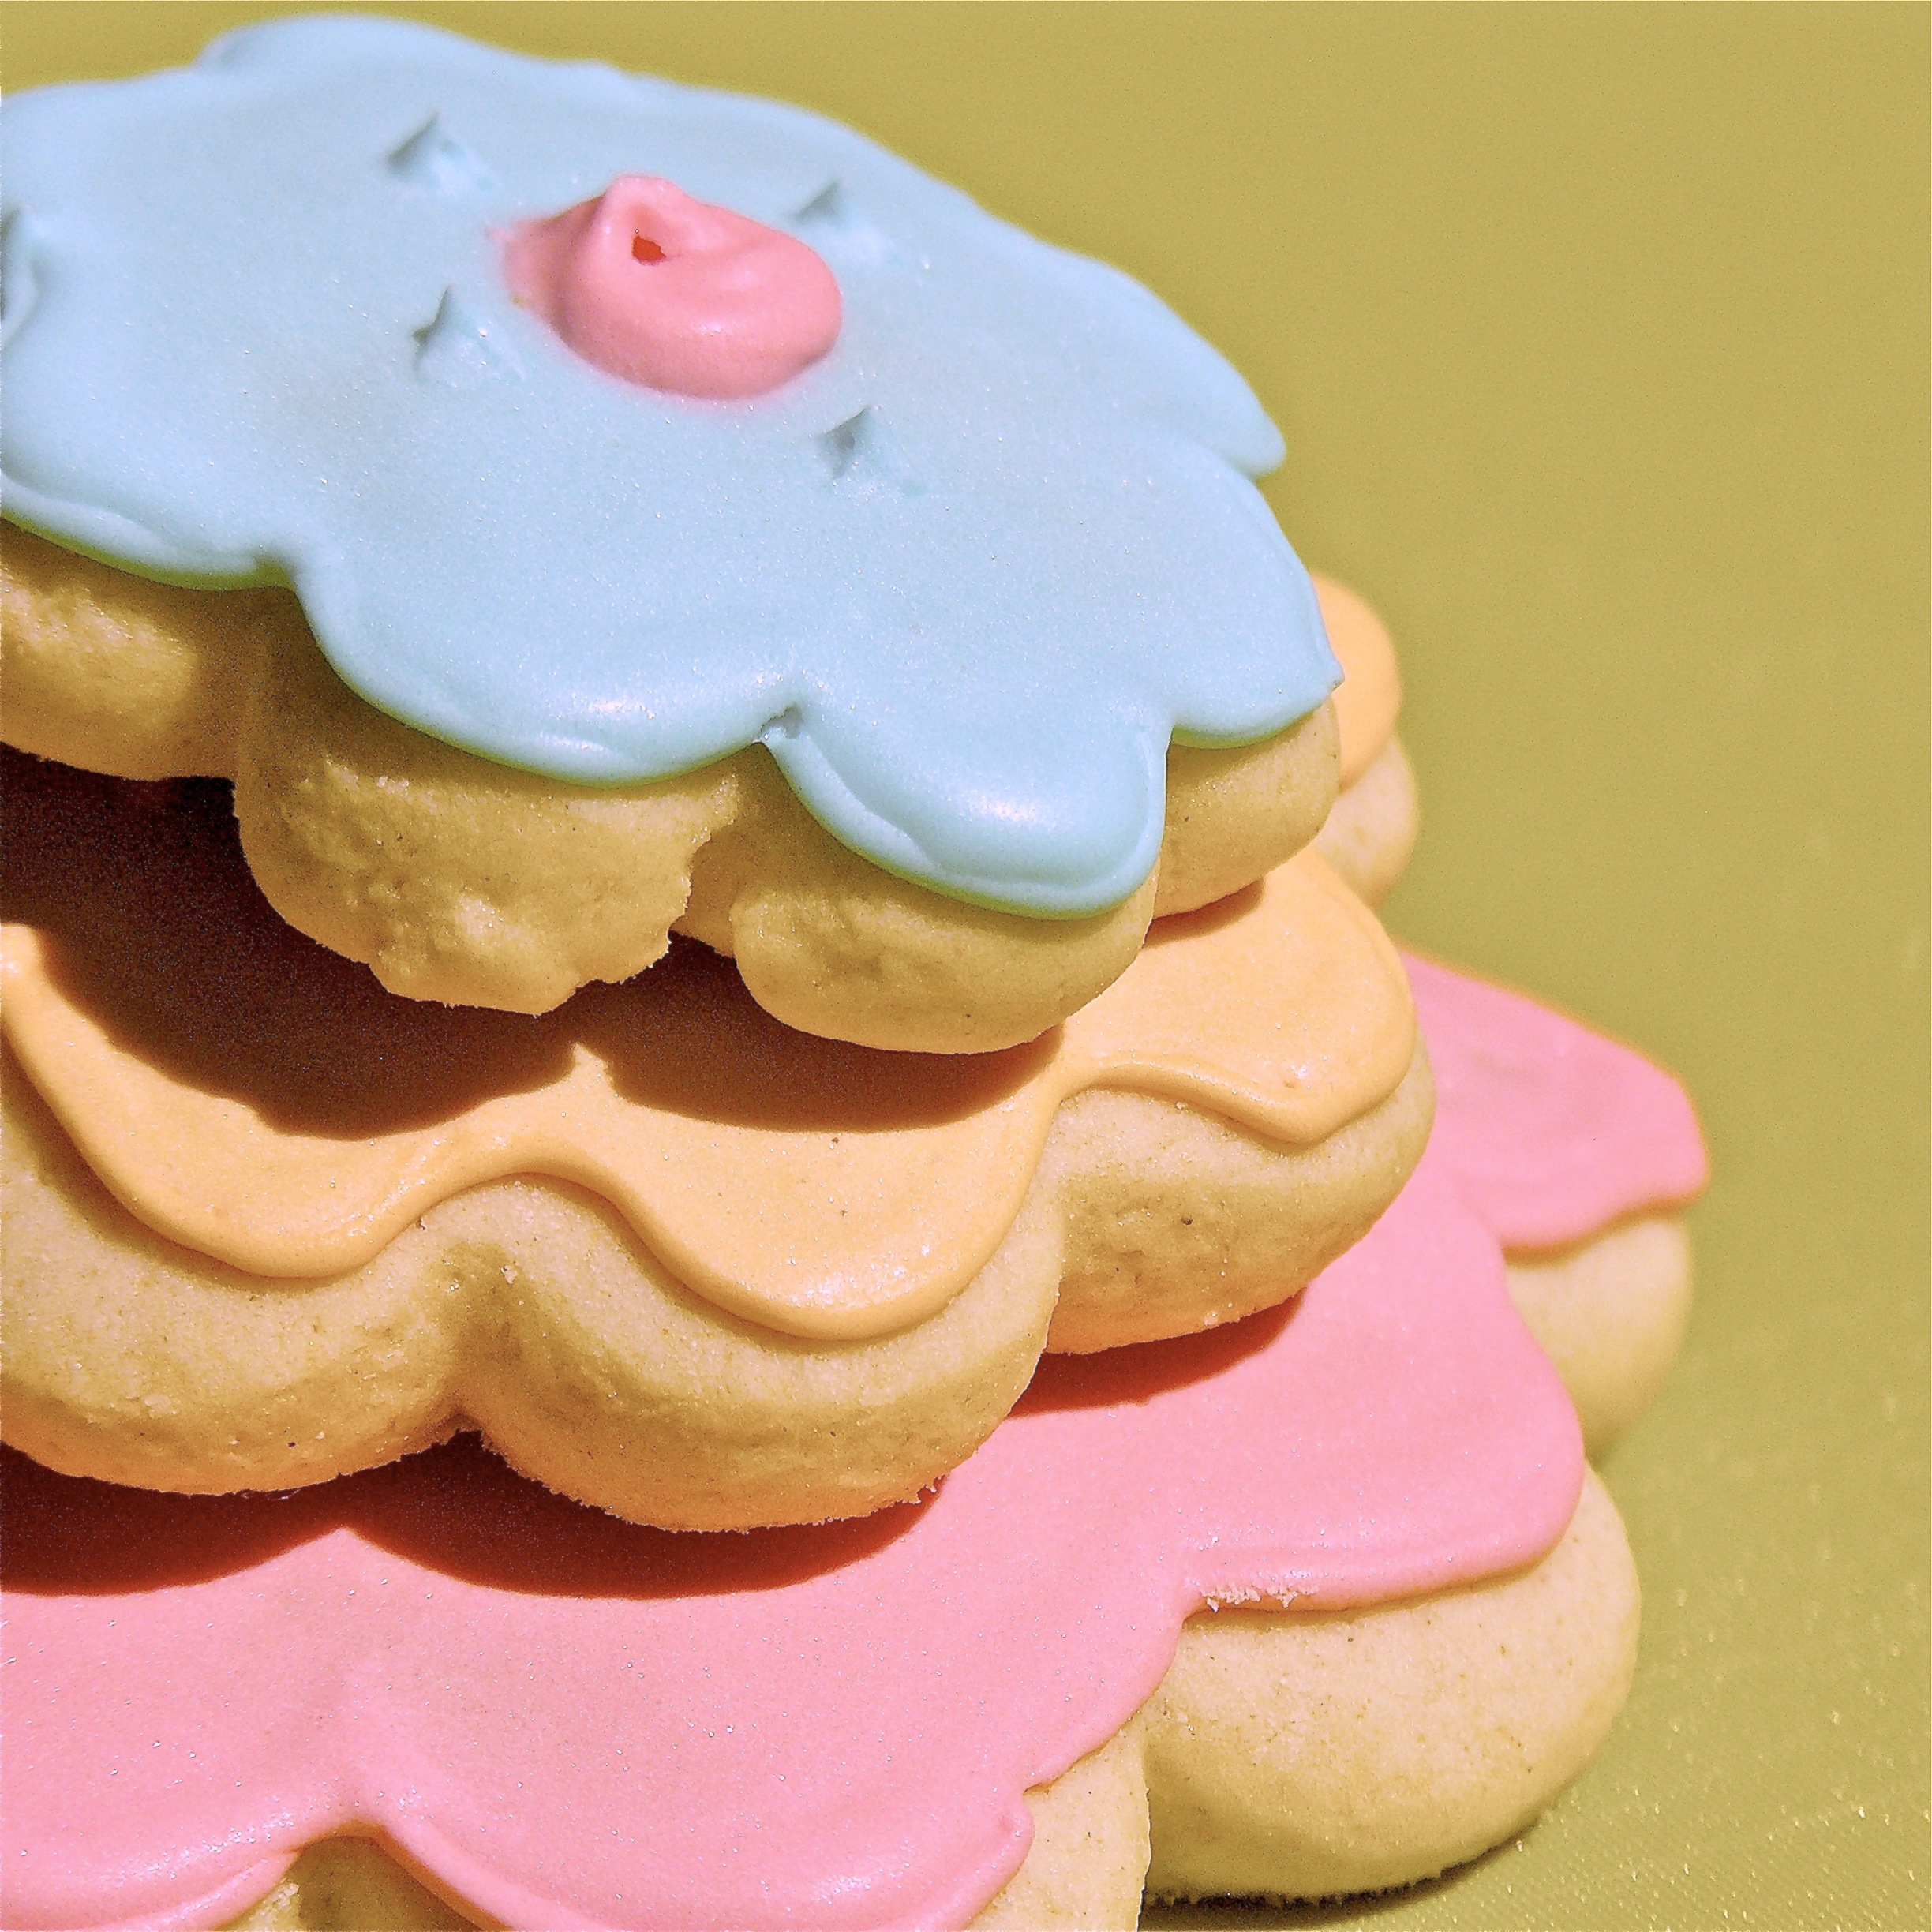 best sugar cookie recipe | eASYbAKED